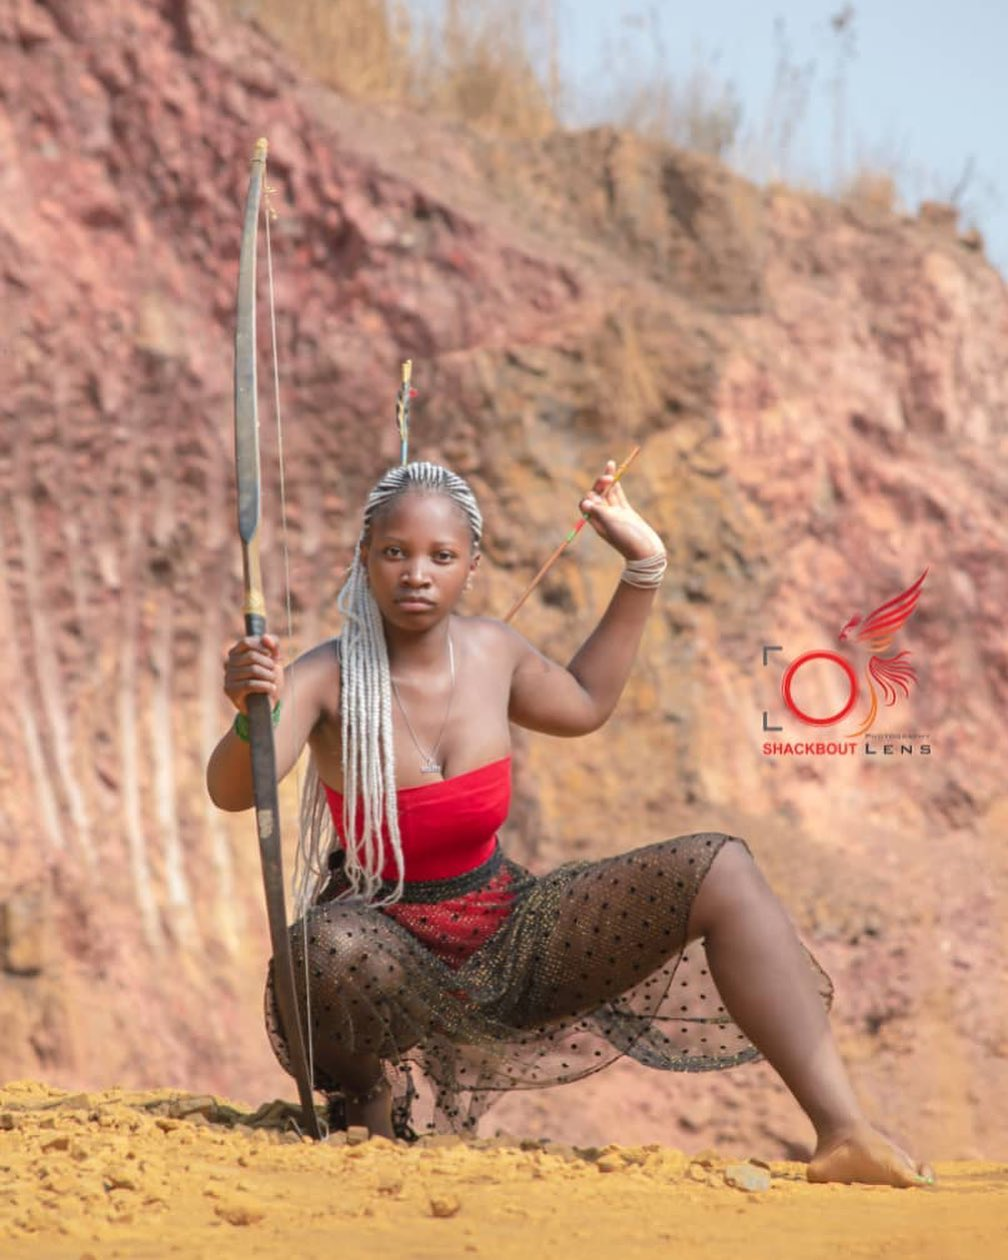 """Video Vixen Makes Waves With Risque Photoshoots, Says She Is Exploring """"Uncharted Territory"""""""